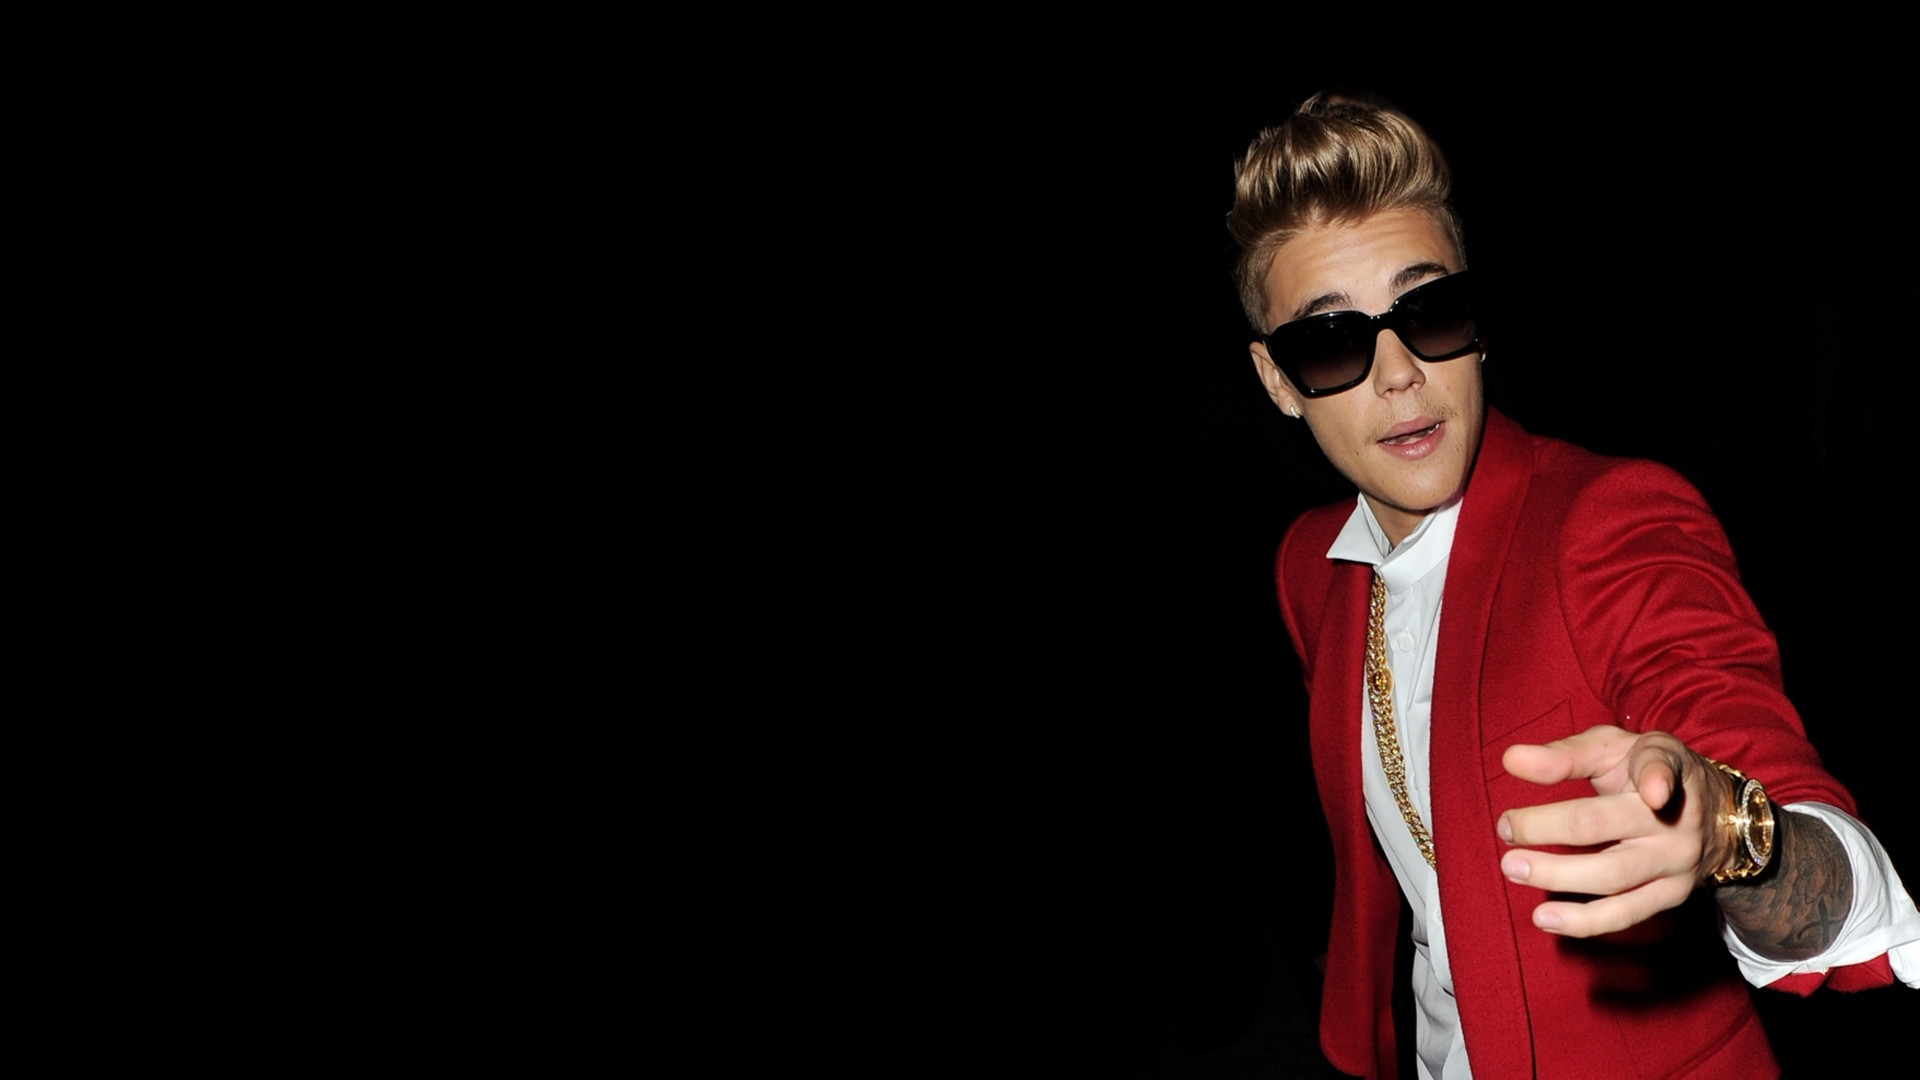 1920x1080 justin bieber new 2015 hd wallpapers 2015